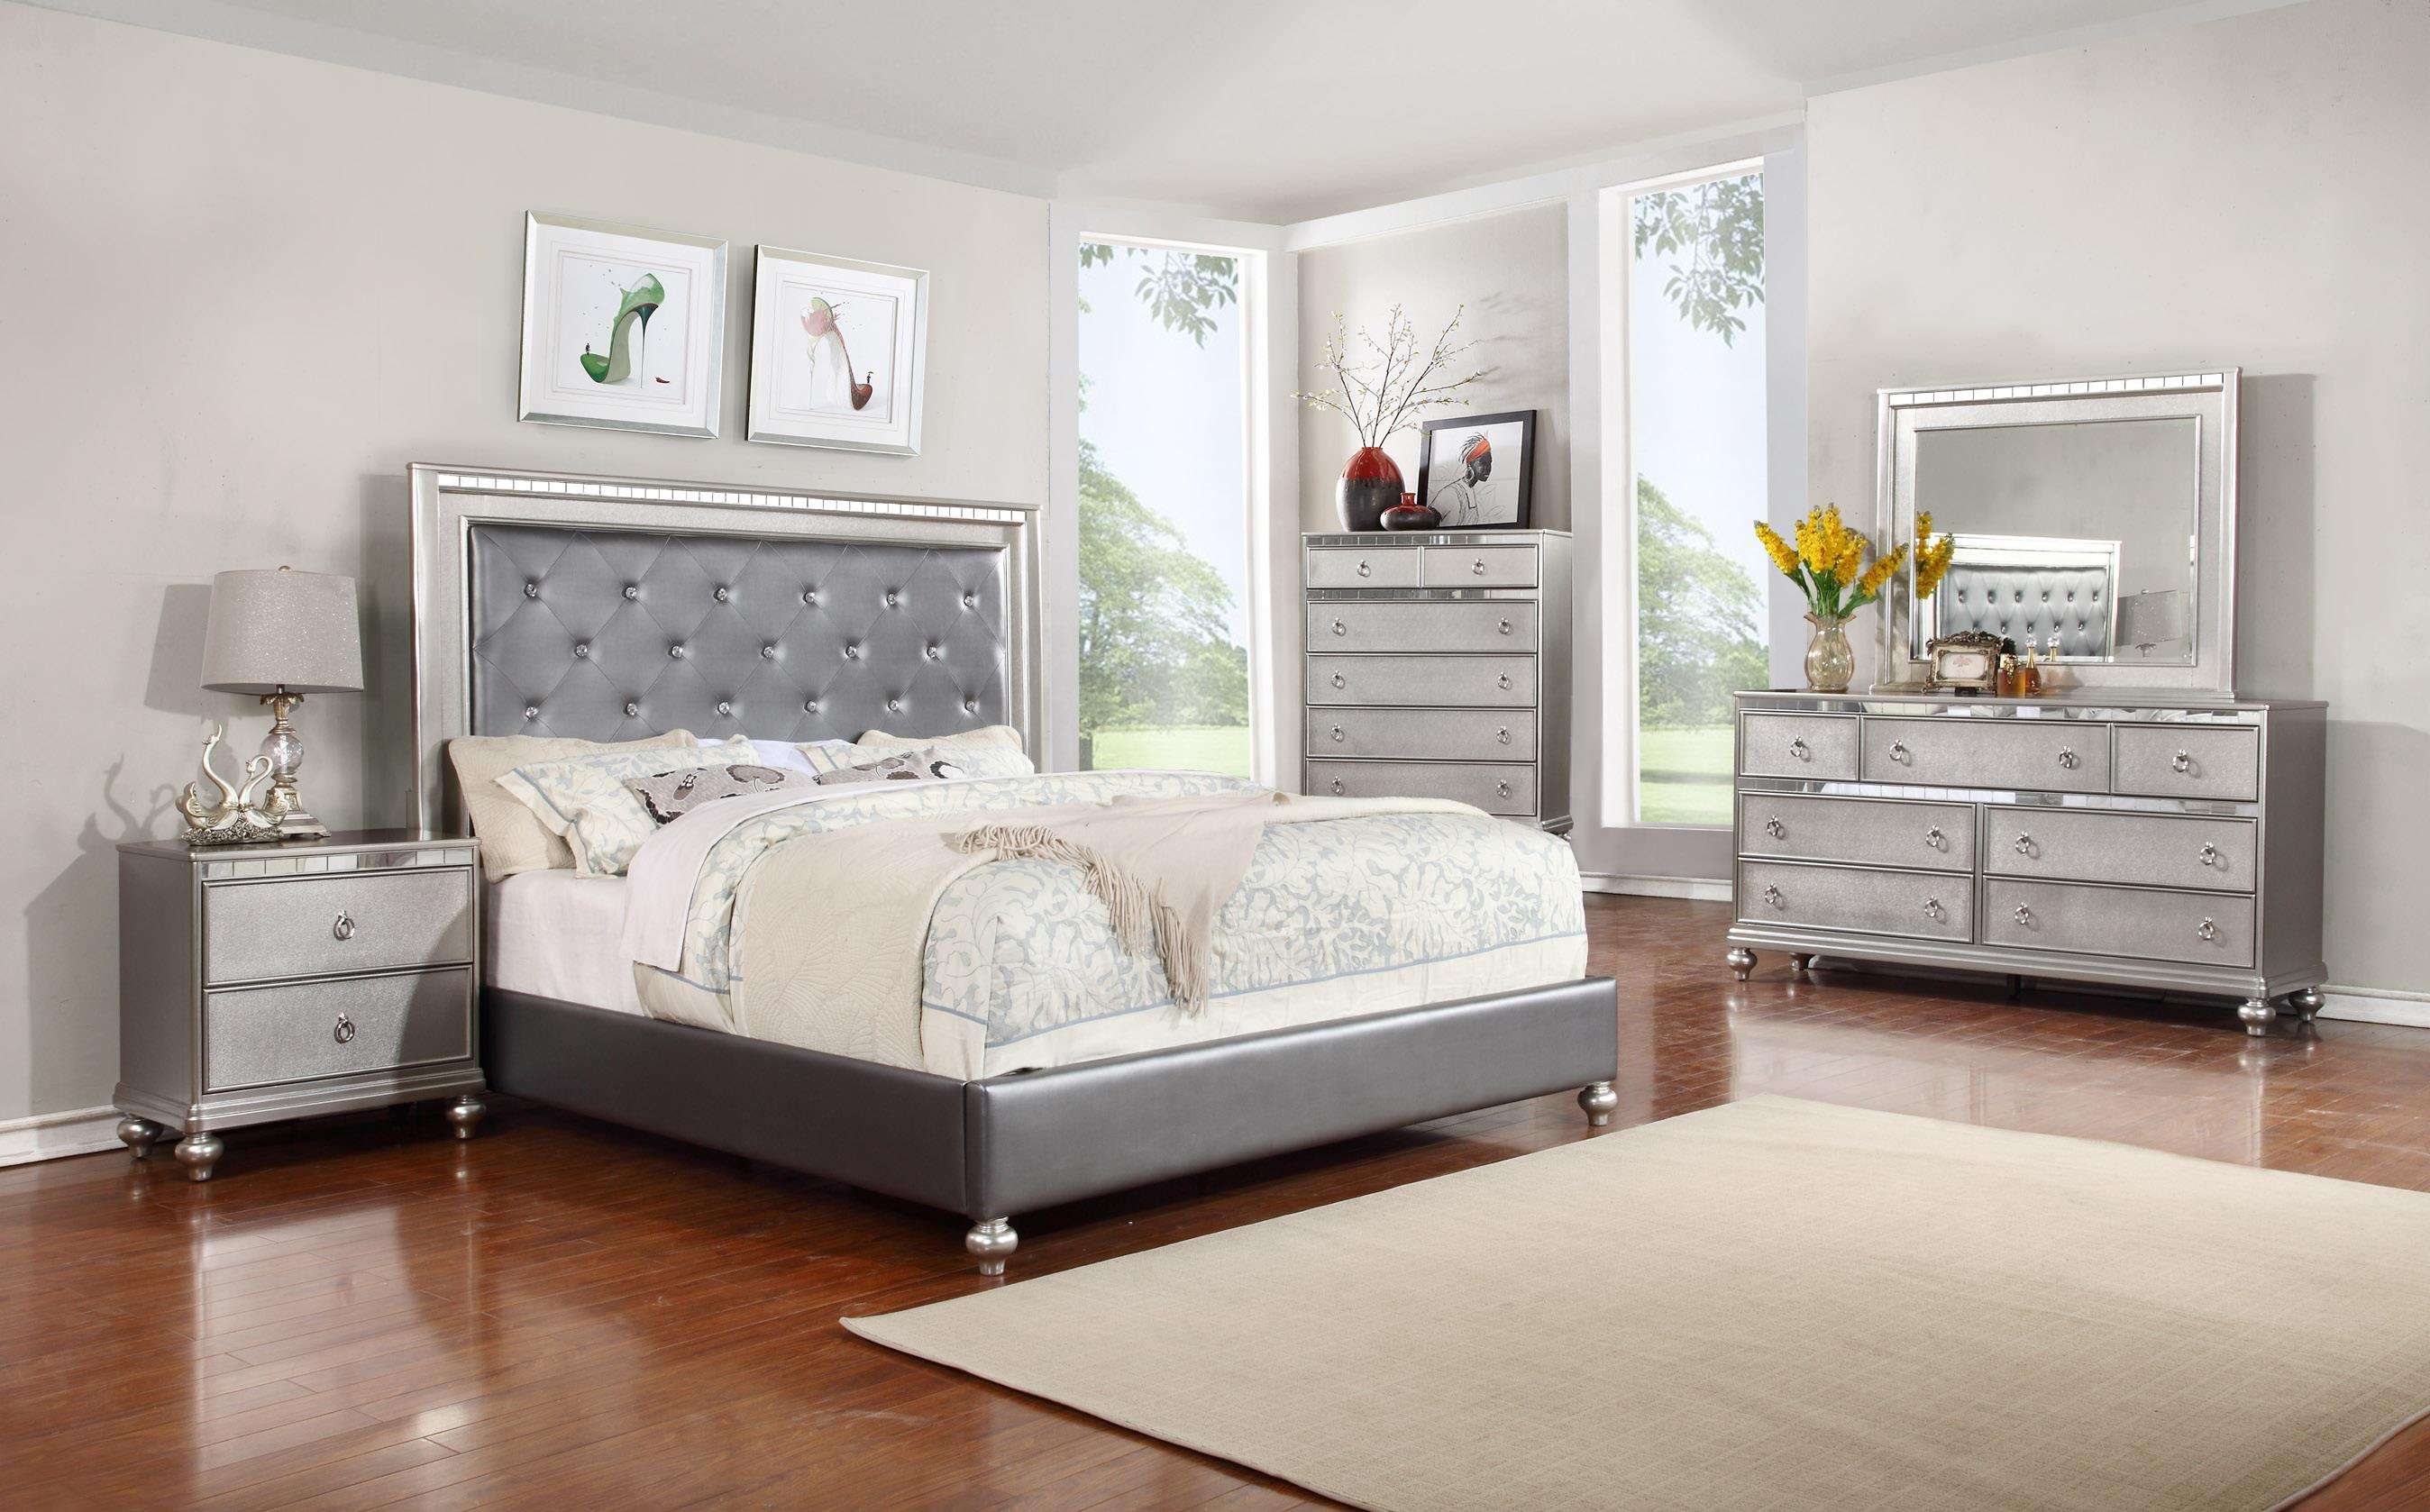 Glam 5PC Queen Bedroom Set Rotmans Bedroom Group Worcester